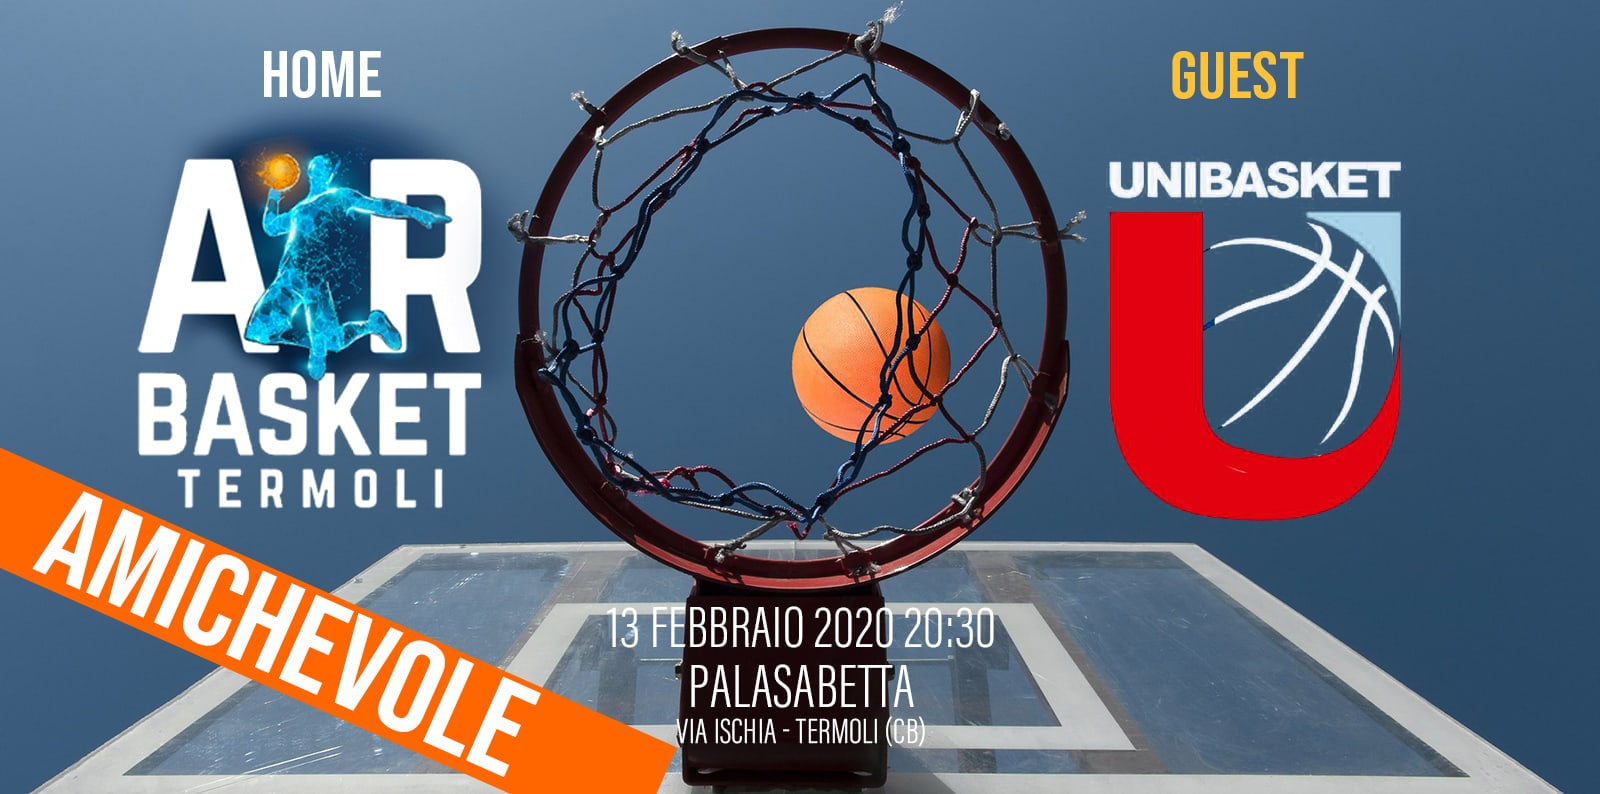 AIR BASKET TERMOLI vs UNIBASKET LANCIANO Serie C Gold